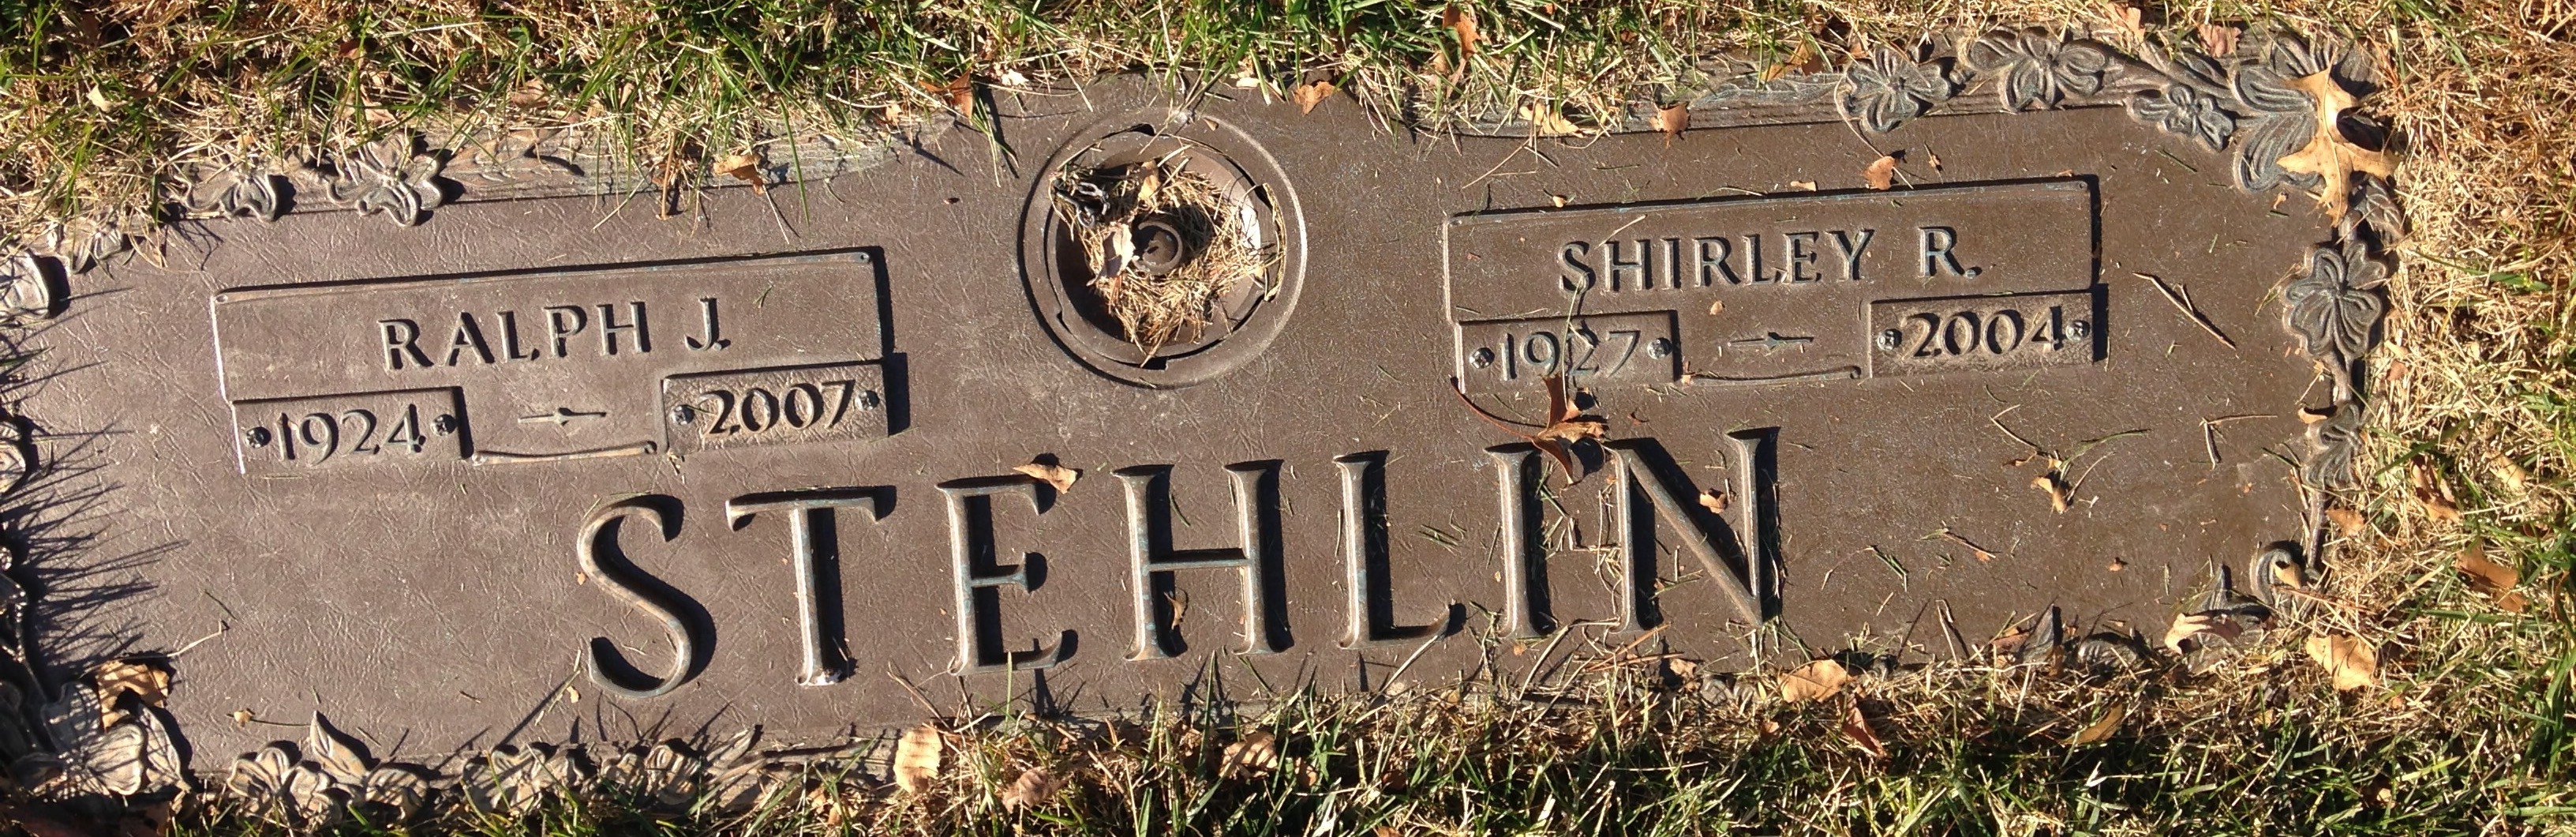 Shirley Stehlin (1927-2004) - Find A Grave Memorial